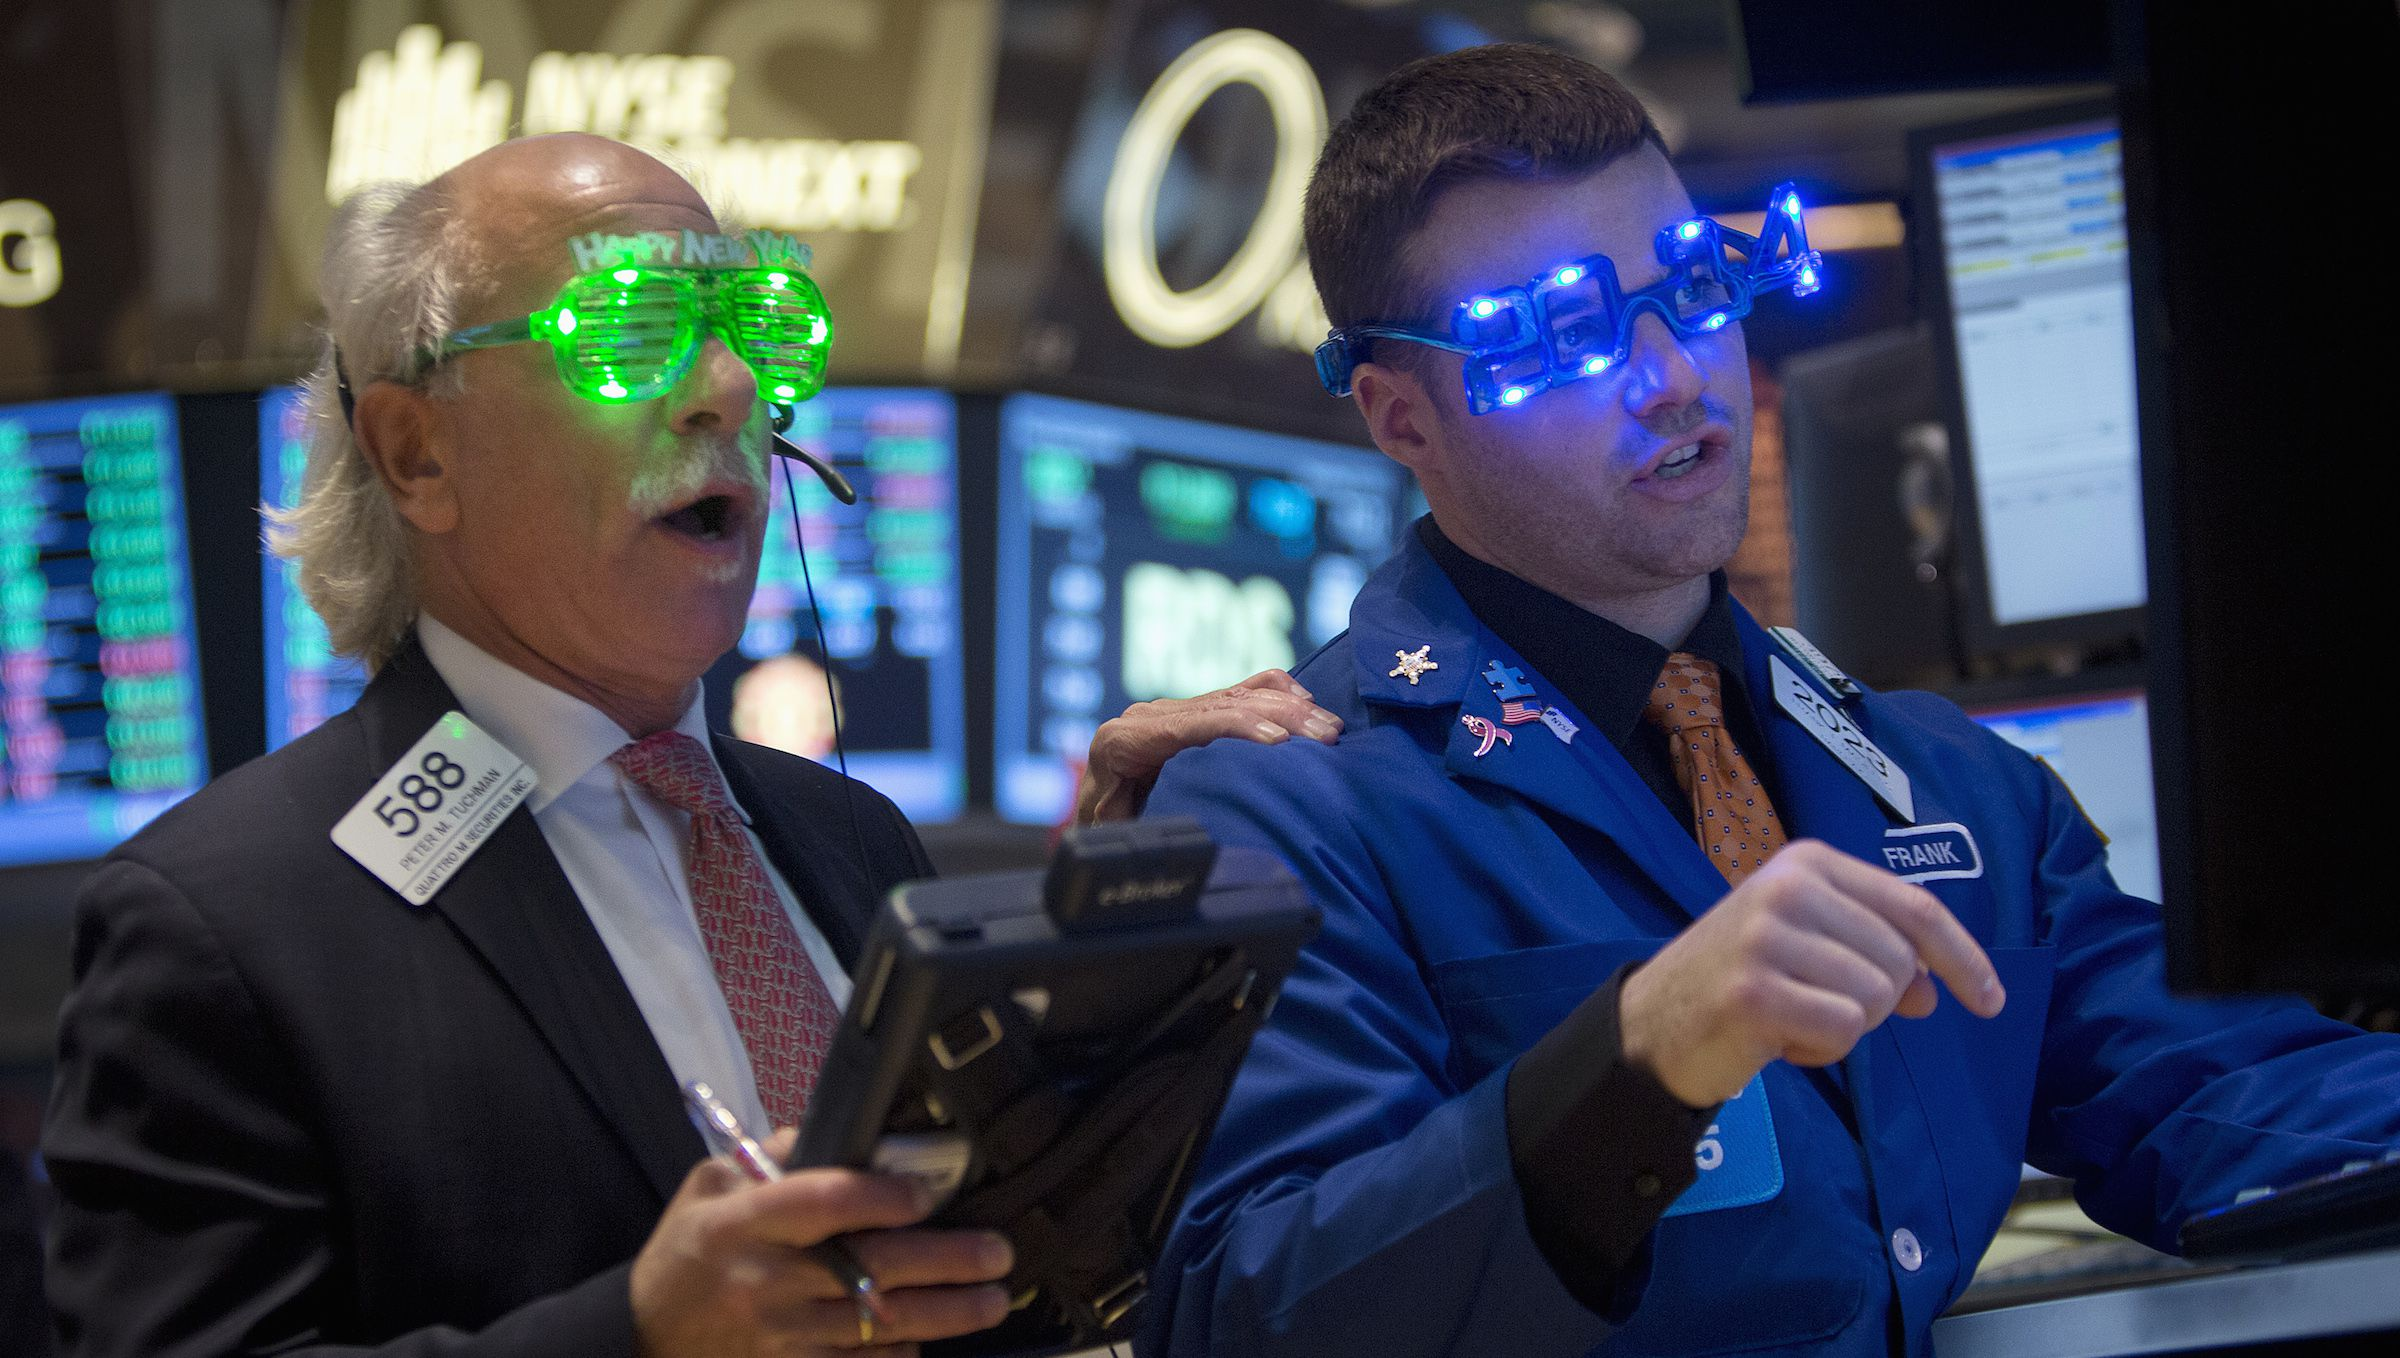 Traders, wearing novelty 2014 glasses, trade at the closing bell on the floor of the New York Stock Exchange on New Year's Eve in New York, December 31, 2013.        REUTERS/Carlo Allegri (UNITED STATES - Tags: BUSINESS) - RTX16YBZ